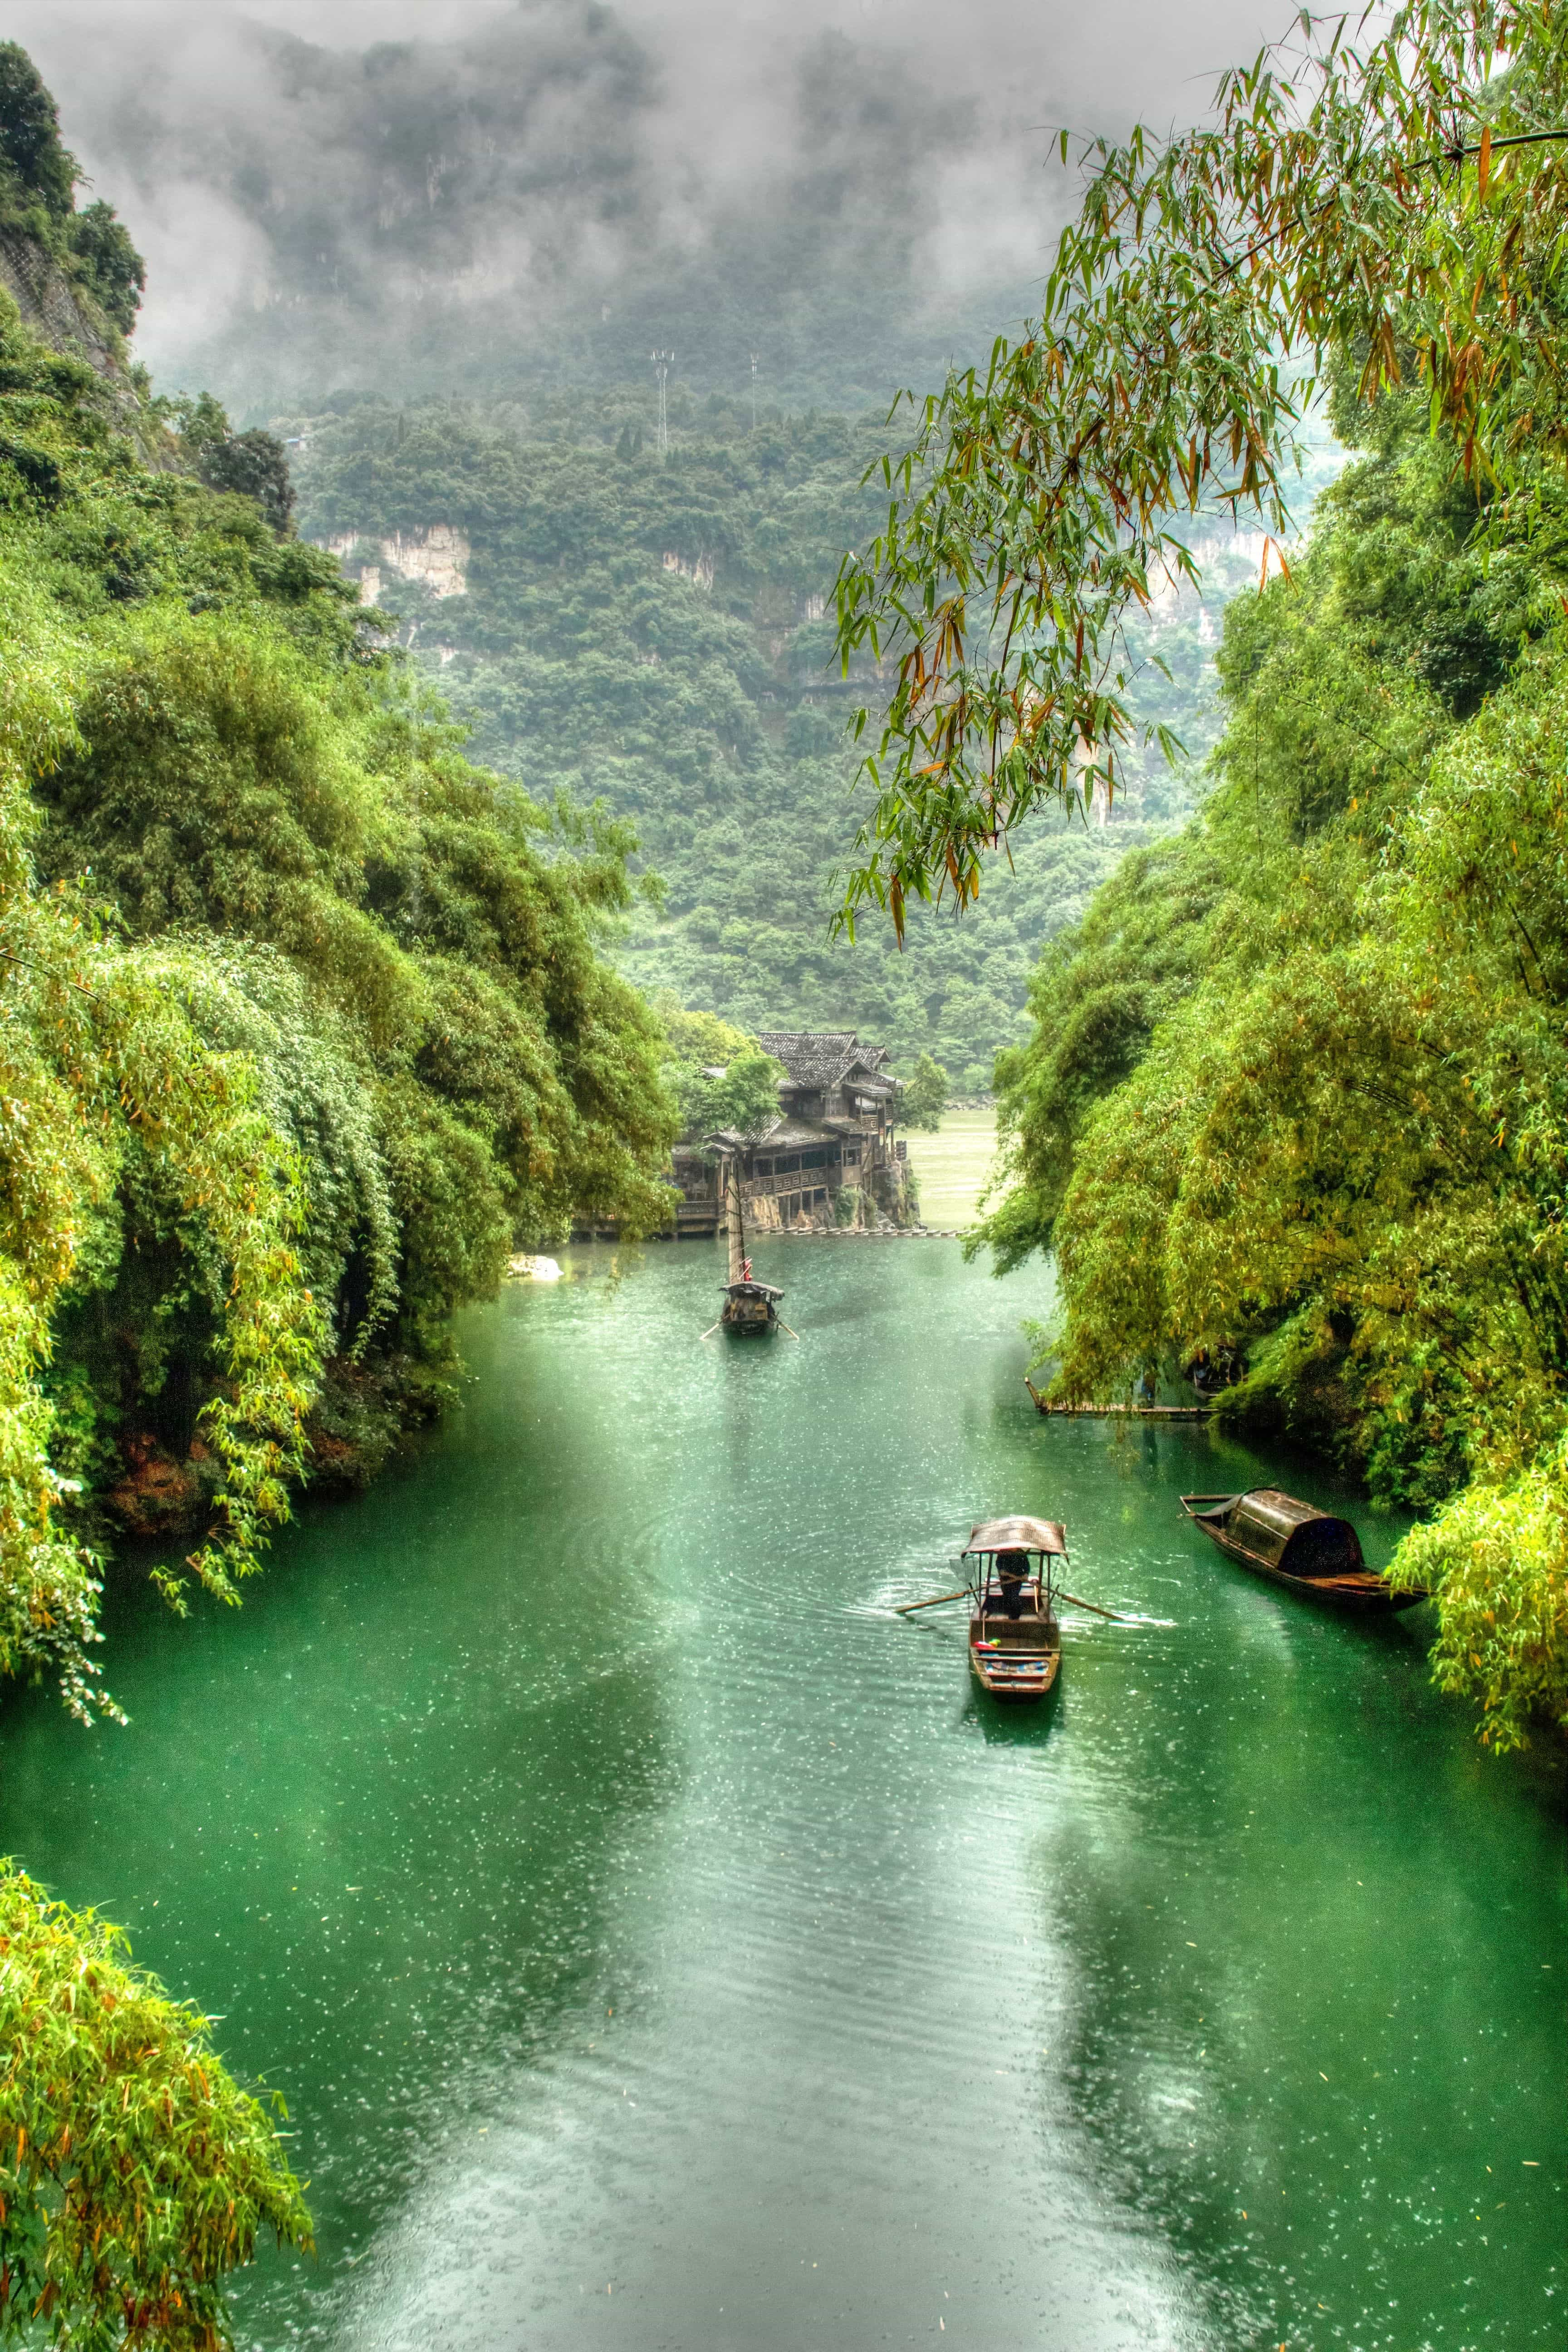 To explore the famous Yangtze River, we hopped on the Victoria Jenna for a five night/four day luxurious cruise through China's beautiful Three Gorges. Read more at www.thefivefoottraveler.com